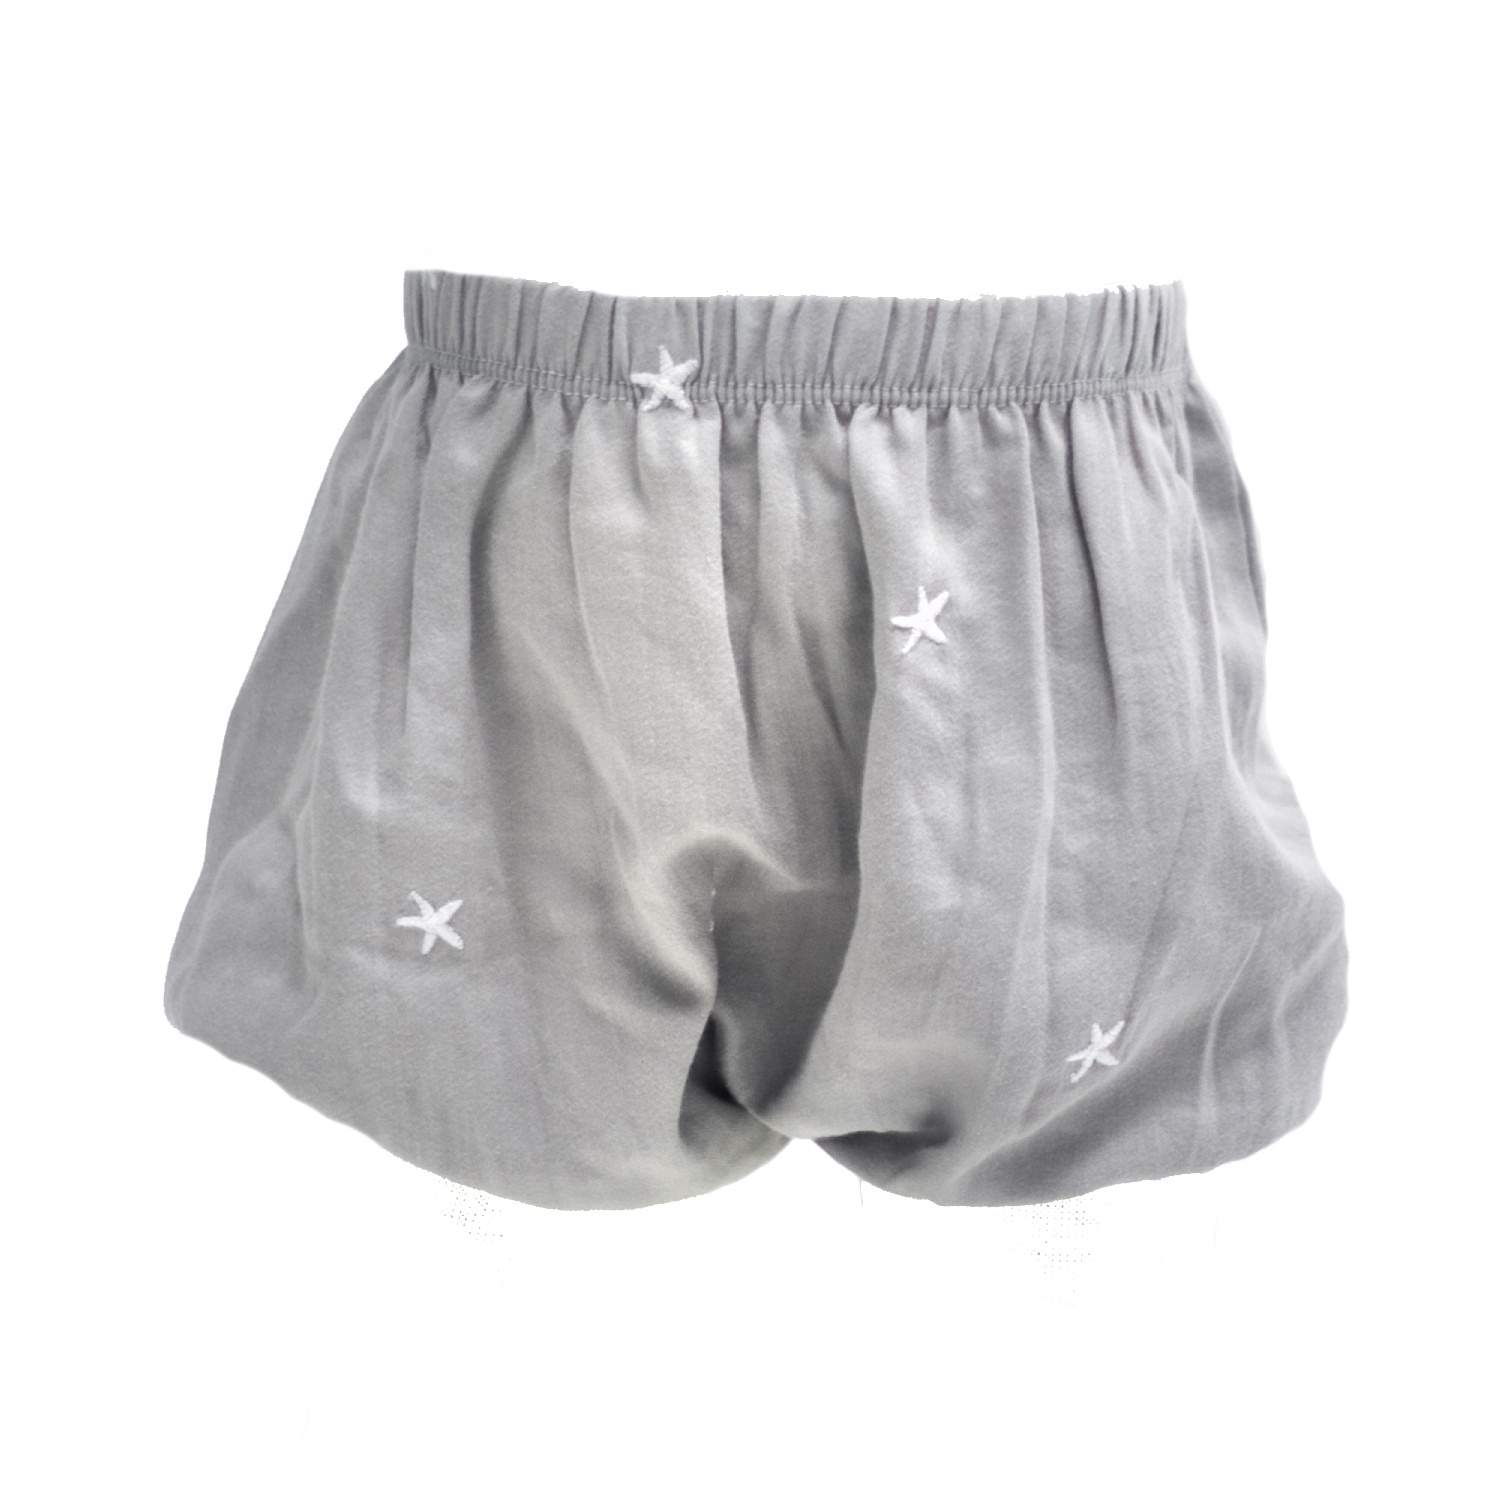 GREY STAR EMBROIDERED BLOOMERS